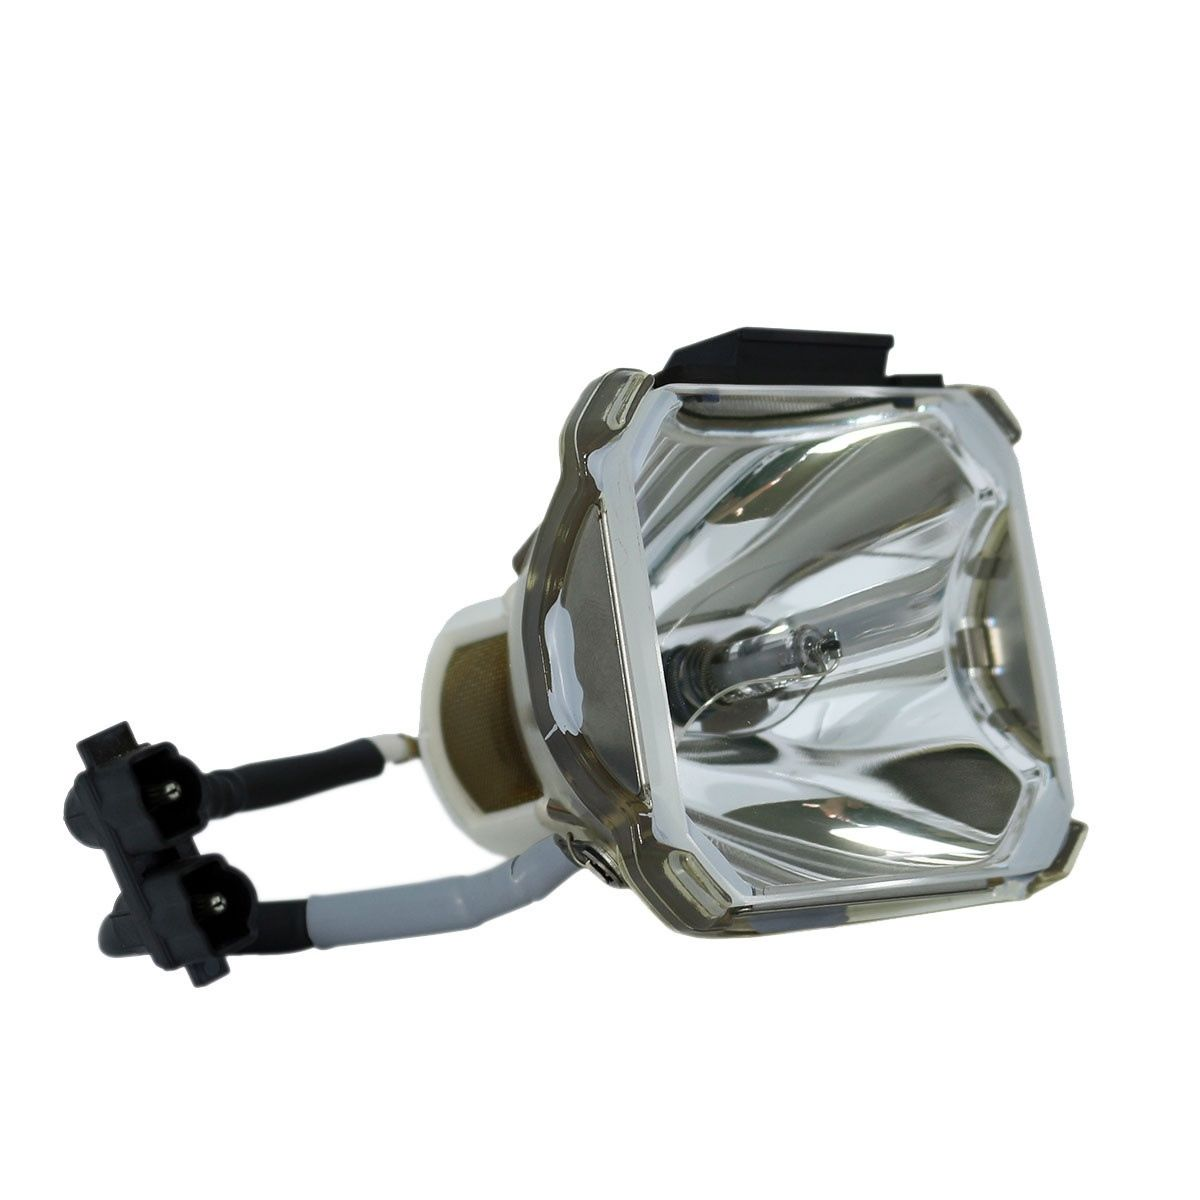 все цены на  Compatible Bare Bulb SP-LAMP-015 SPLAMP015 for Infocus LP840 / ASK C440 / PROXIMA DP8400x Projector Bulb Lamp Without housing  онлайн